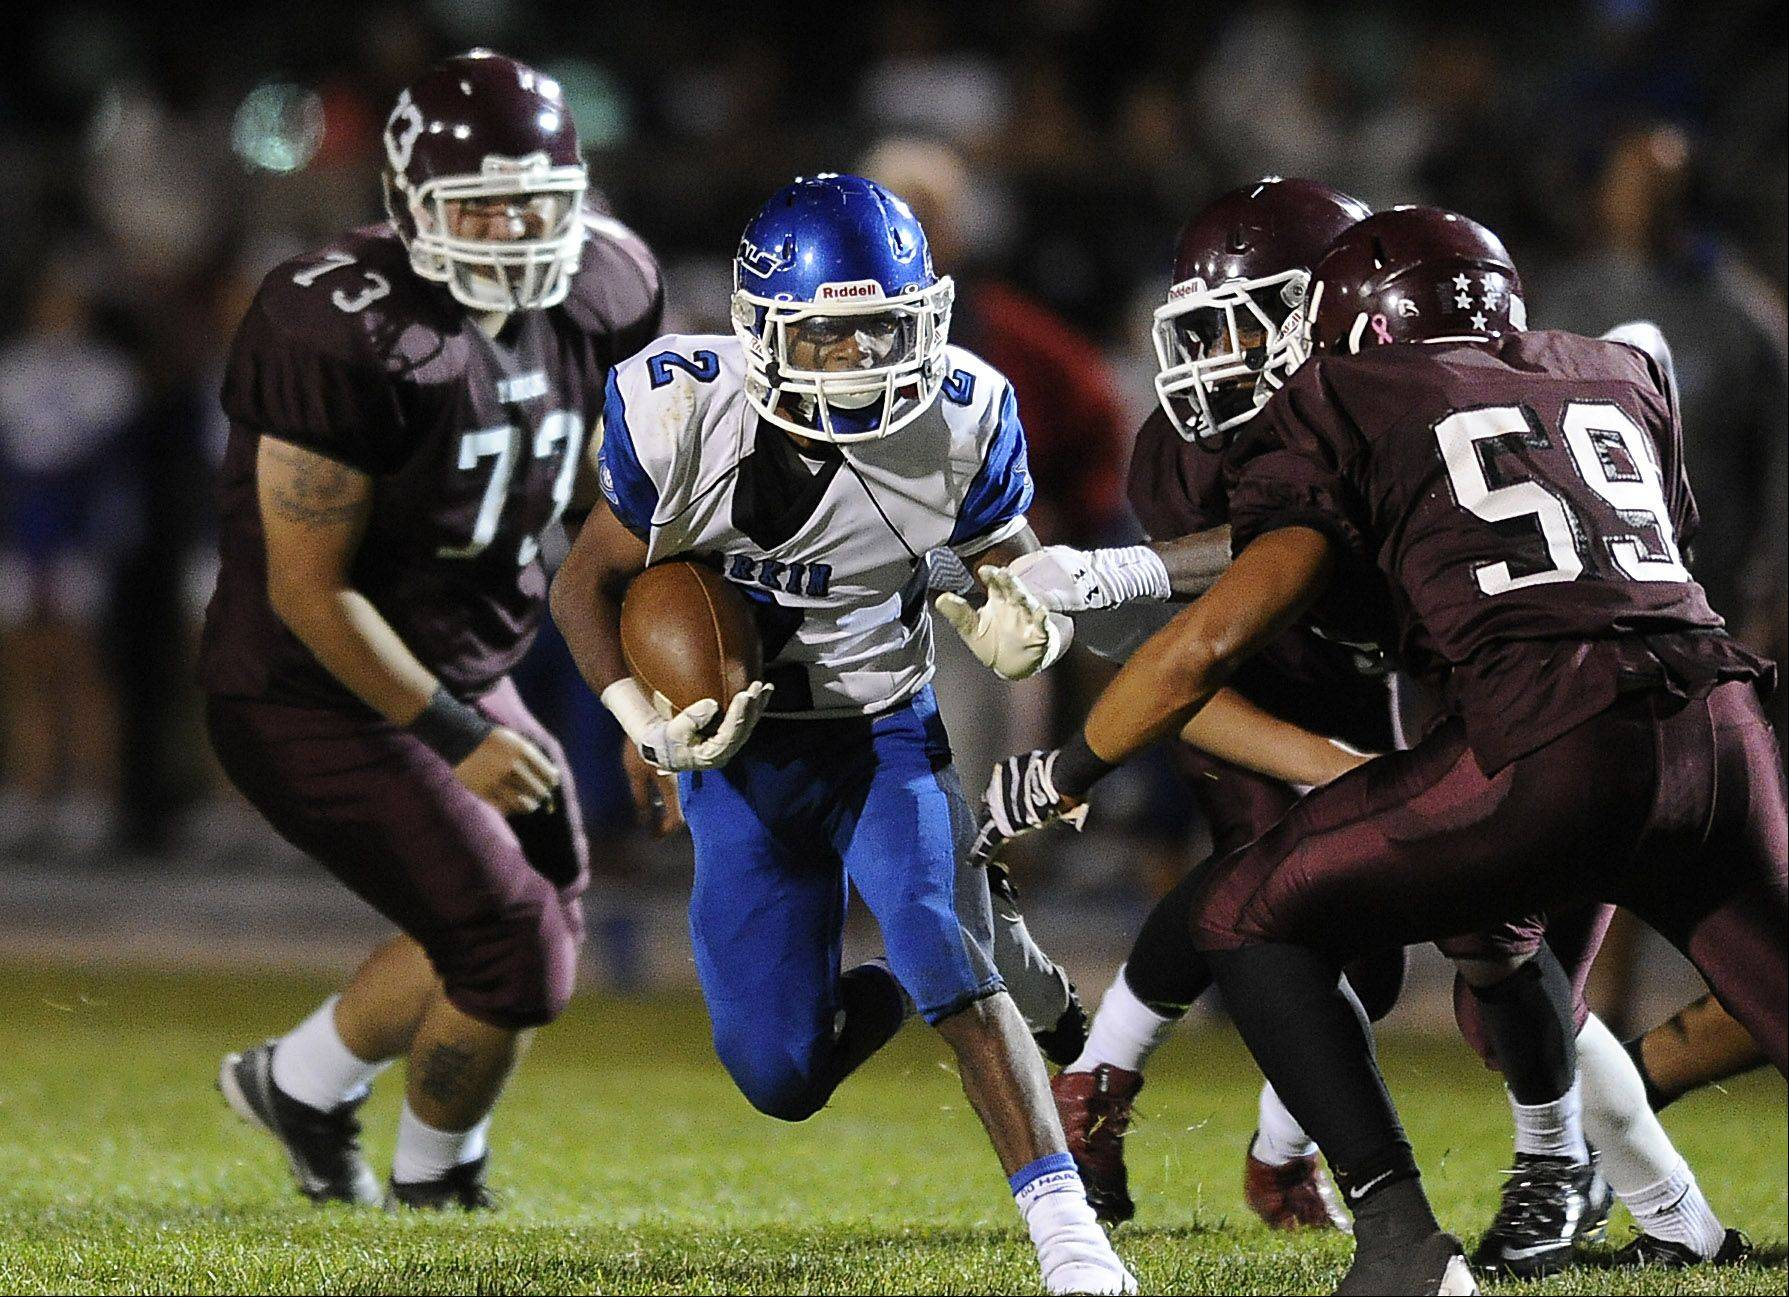 Larkin's Damion Clemons runs for short yardage in the first quarter at Elgin High School's Memorial Field on Friday.